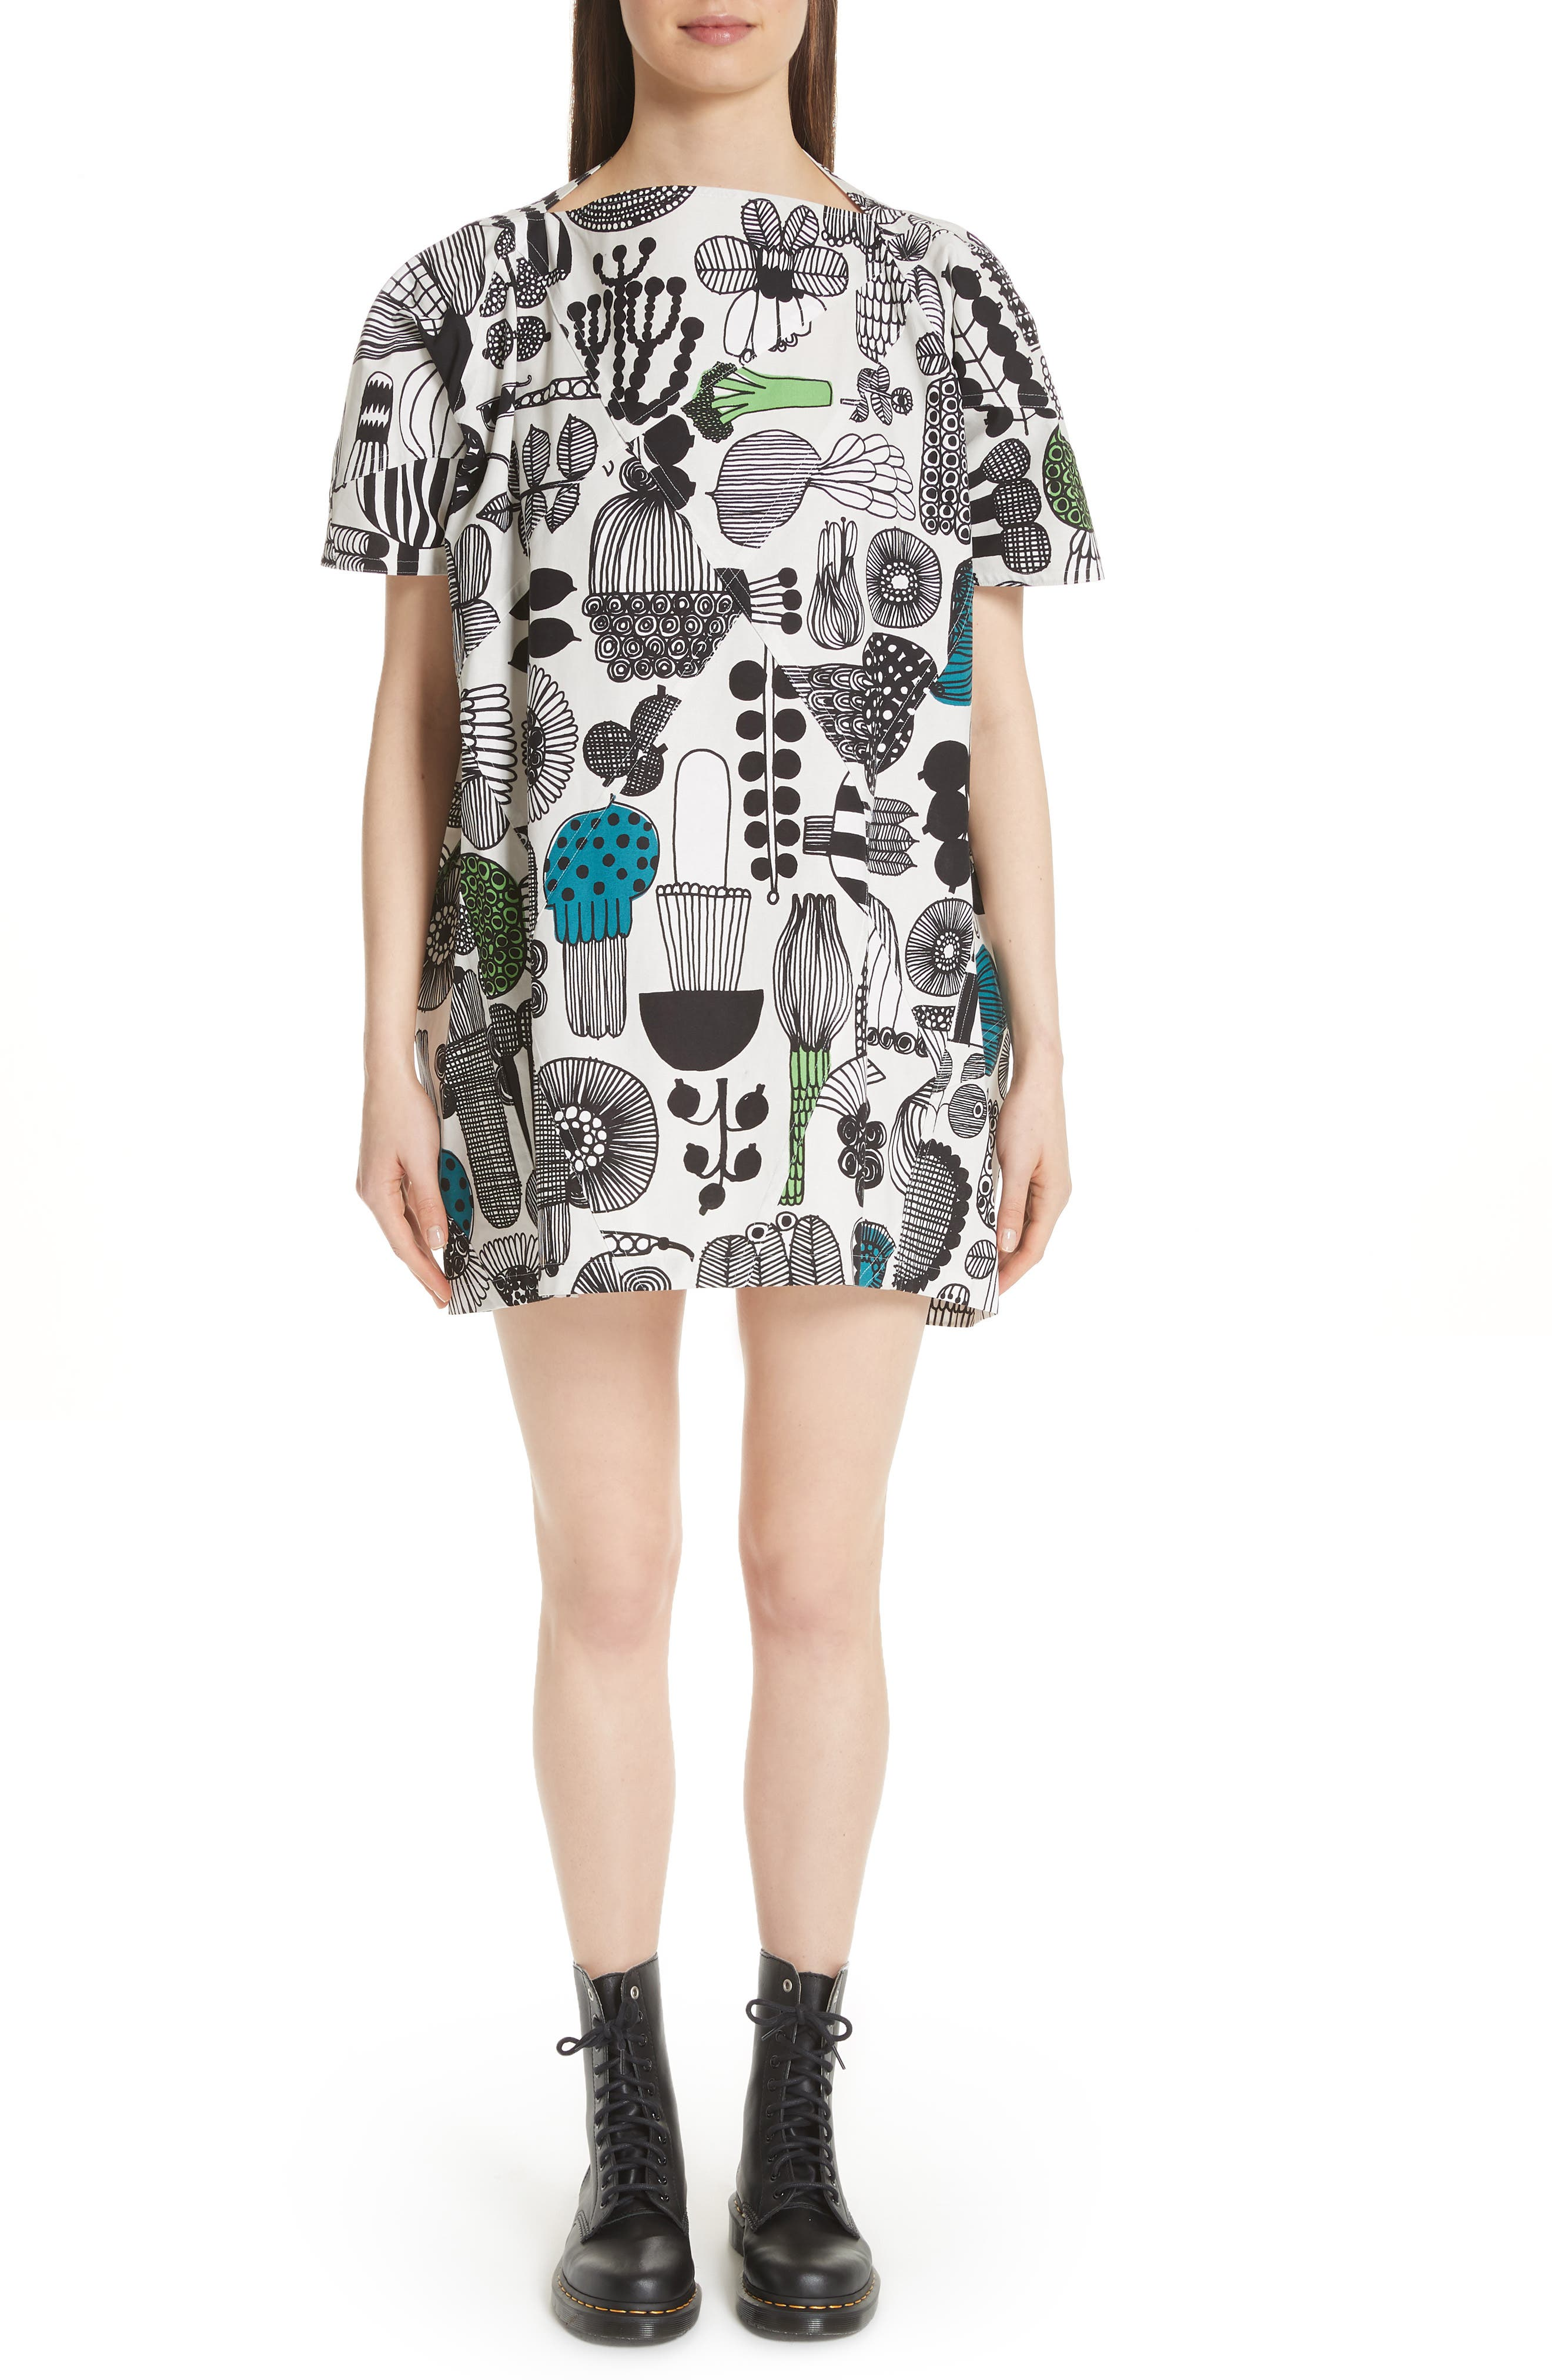 Vegetable Print Dress,                         Main,                         color, Gry/ Grn/ Blk